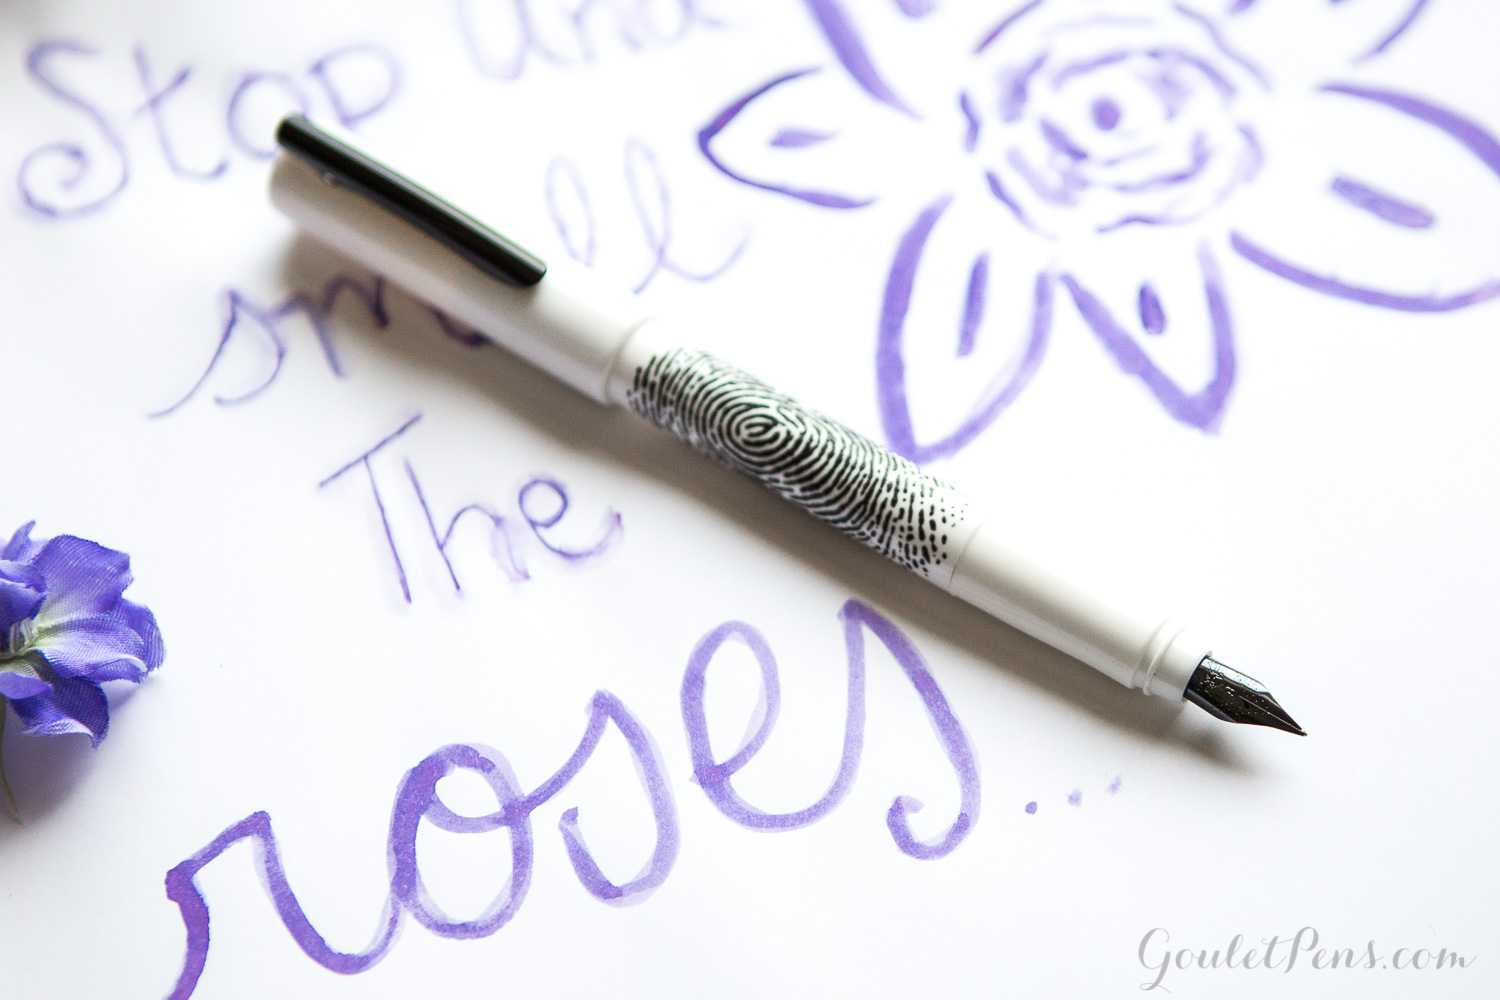 Purple flower drawing, illustrated with a Faber-Castell WritInk White fountain pen and Graf von Faber-Castell Violet Blue ink.